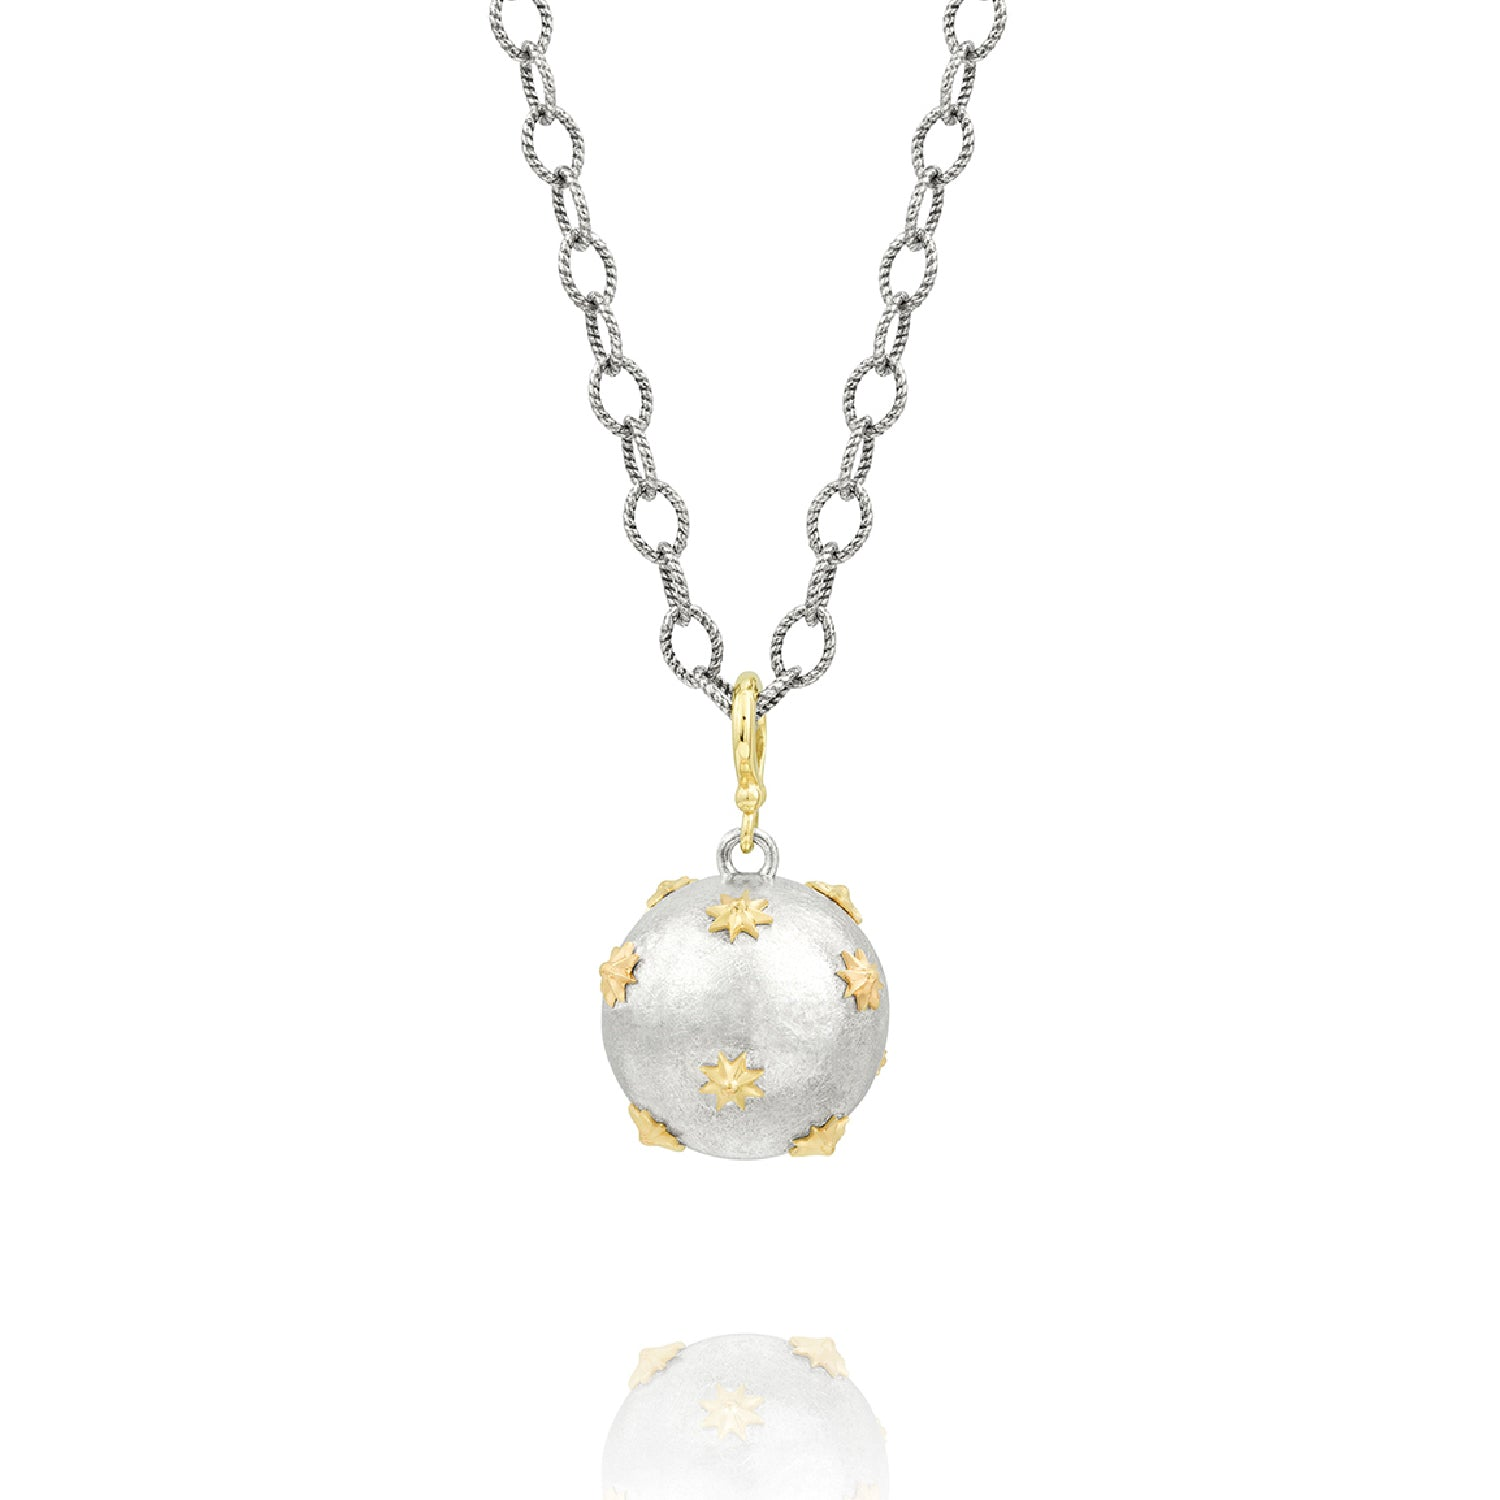 Sterling Silver & Yellow Gold Raised Star Ball Necklace, Jewelry - Katherine & Josephine